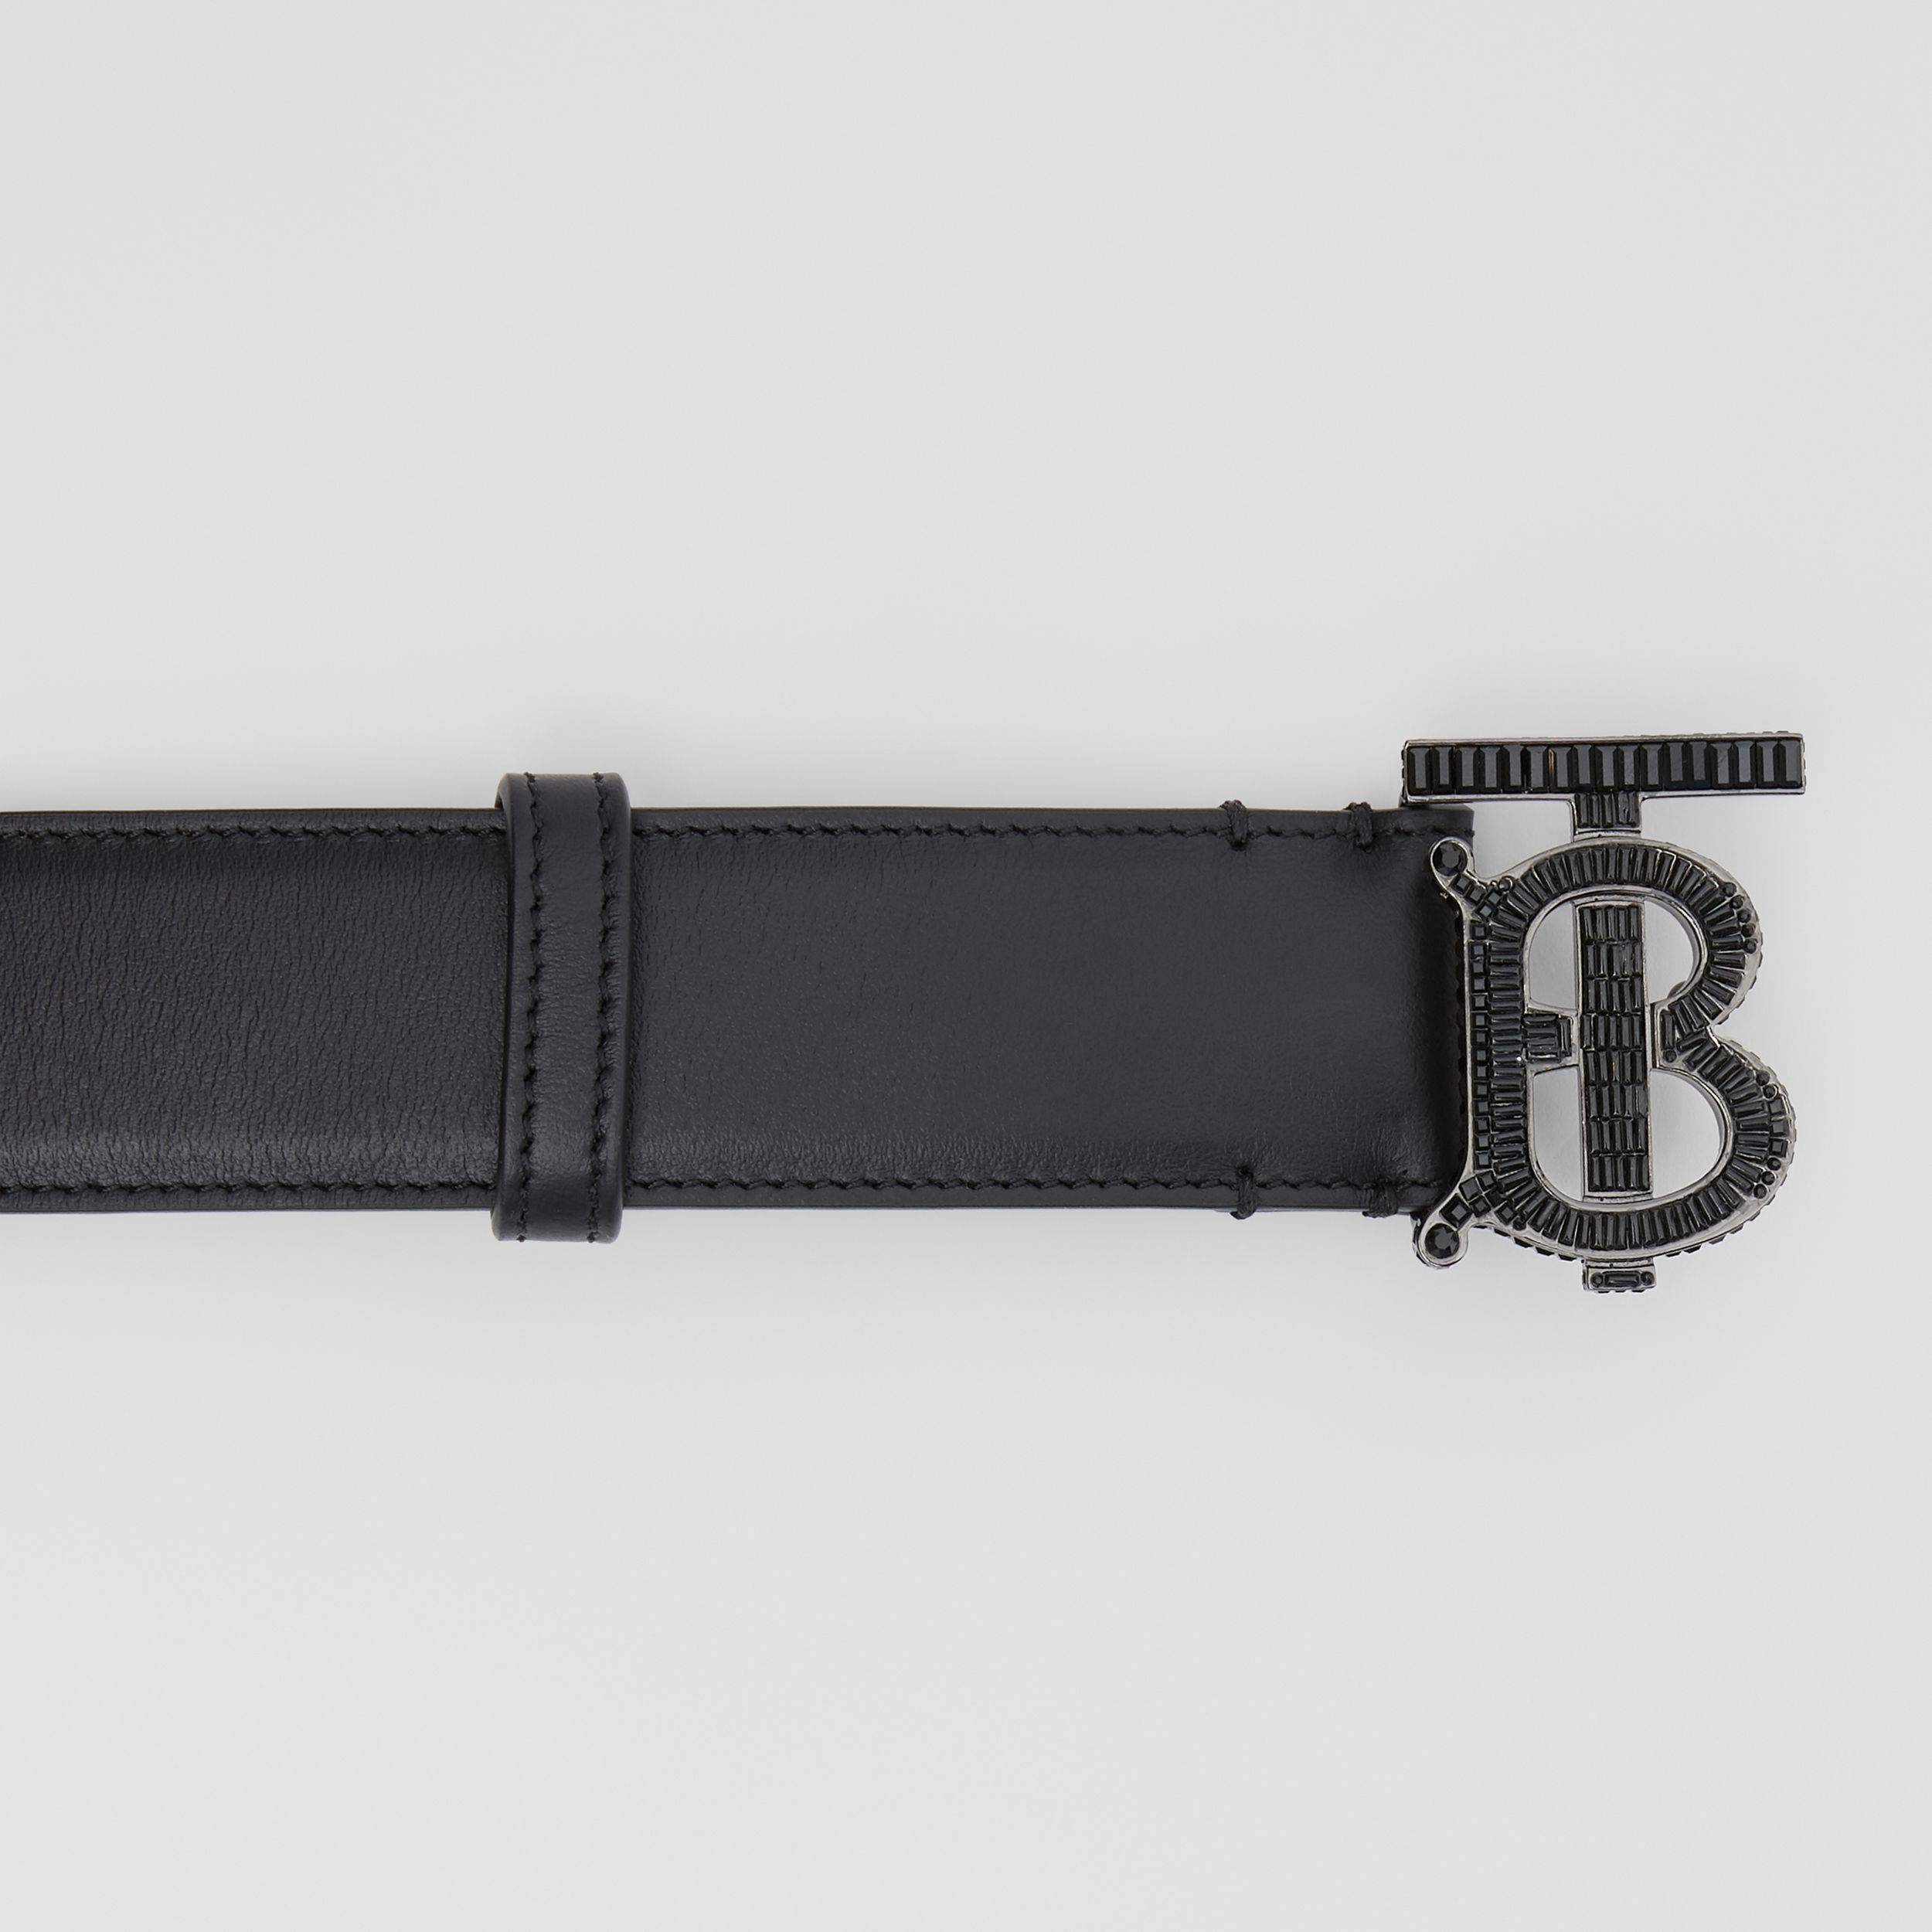 Crystal Monogram Motif Leather Belt in Black | Burberry - 2